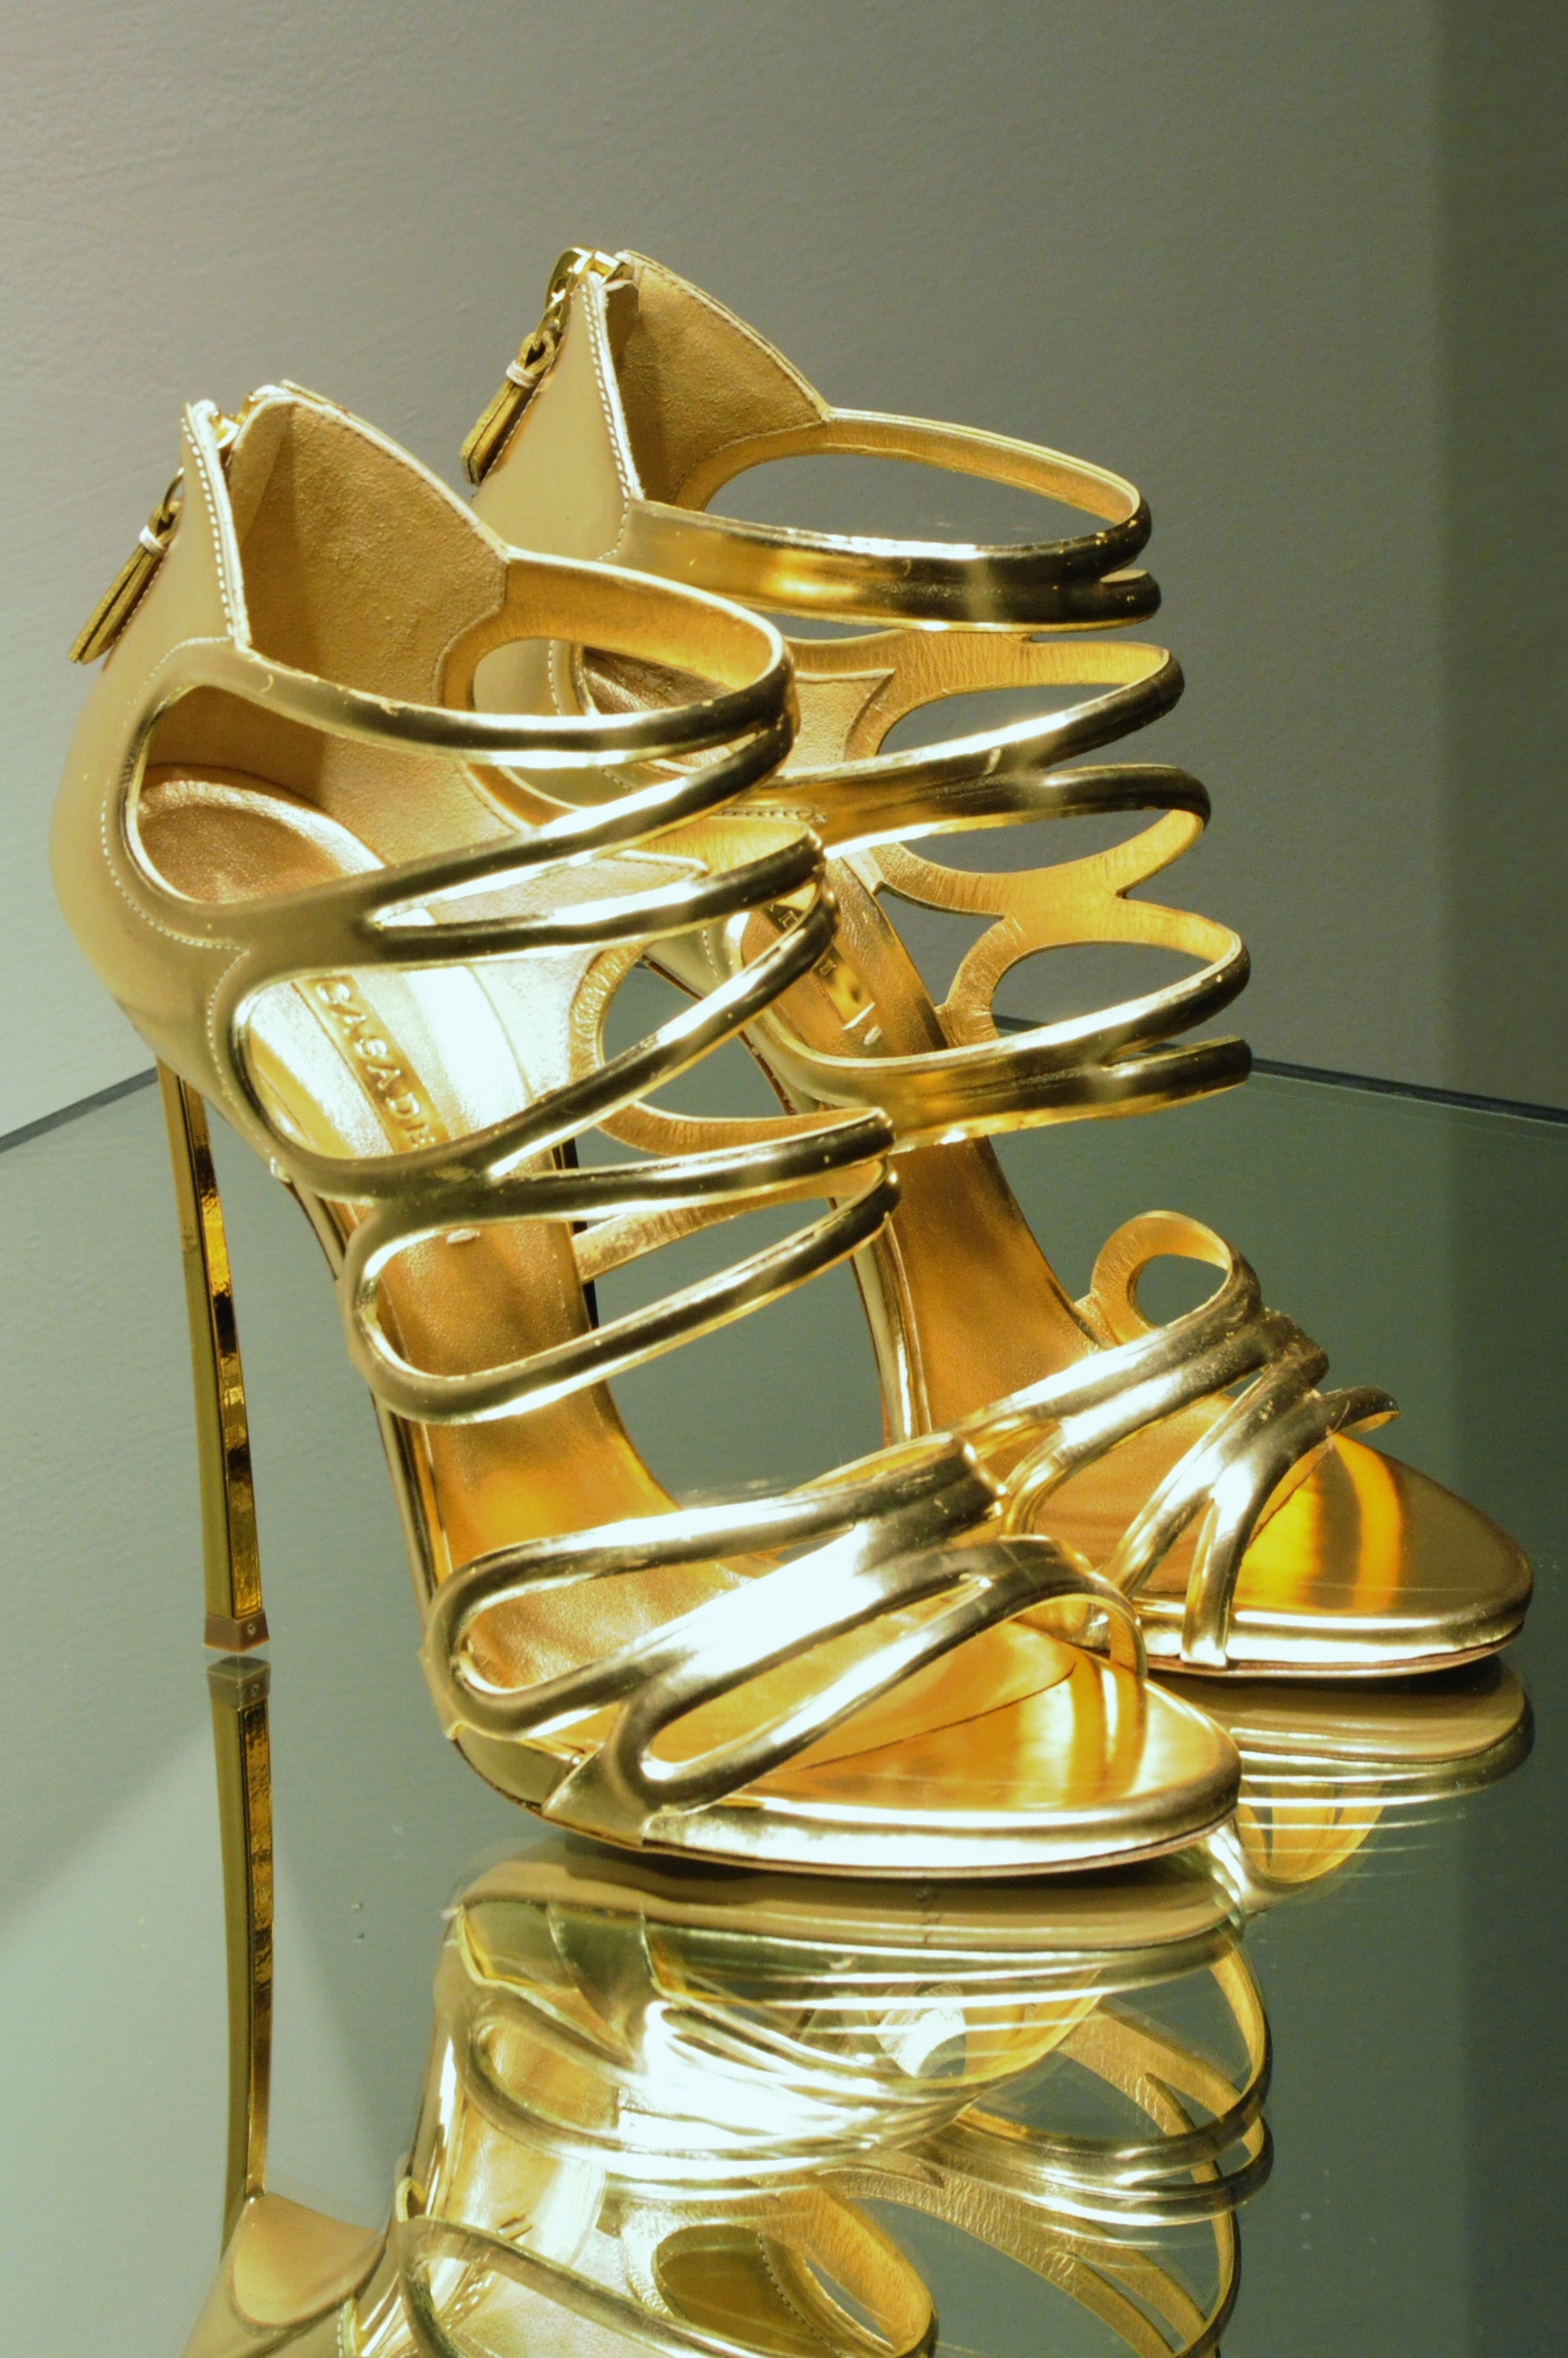 Samsung Mobile Hd Wallpapers Free Download Free Stock Photo Of Golden High Heels Luxury